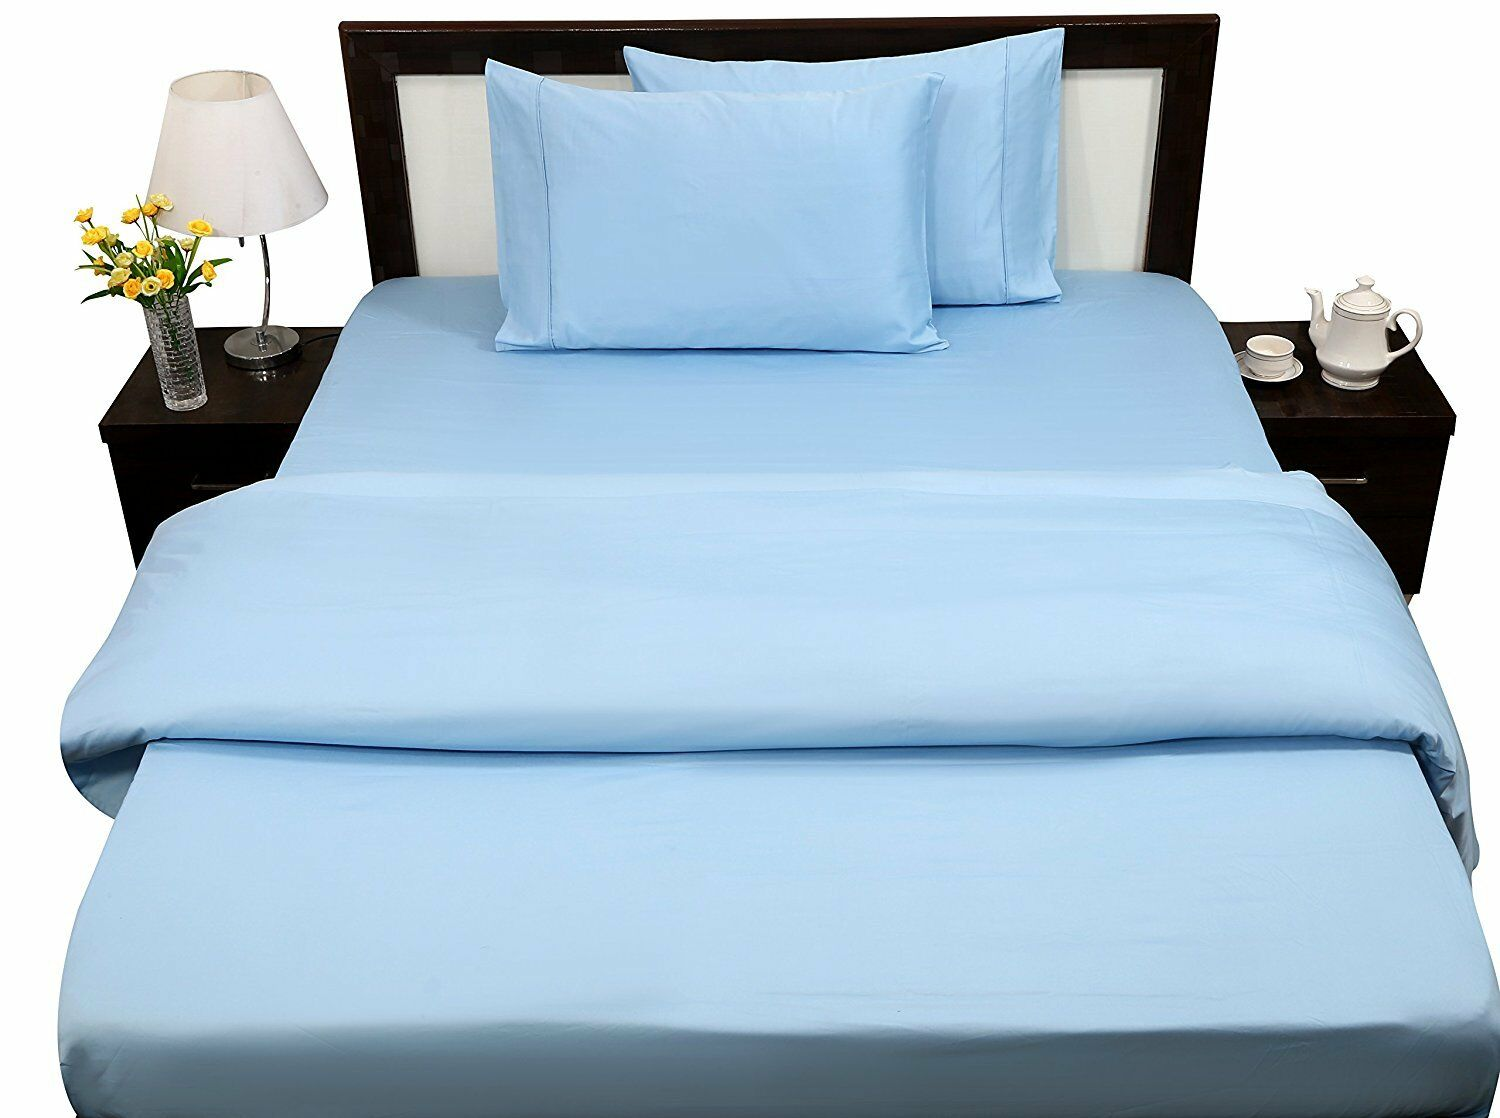 SUPER SOFT BED SHEET SETS LIGHT blueE SOLID COTTON 800-TC ALL SIZE 15 INCH DROP